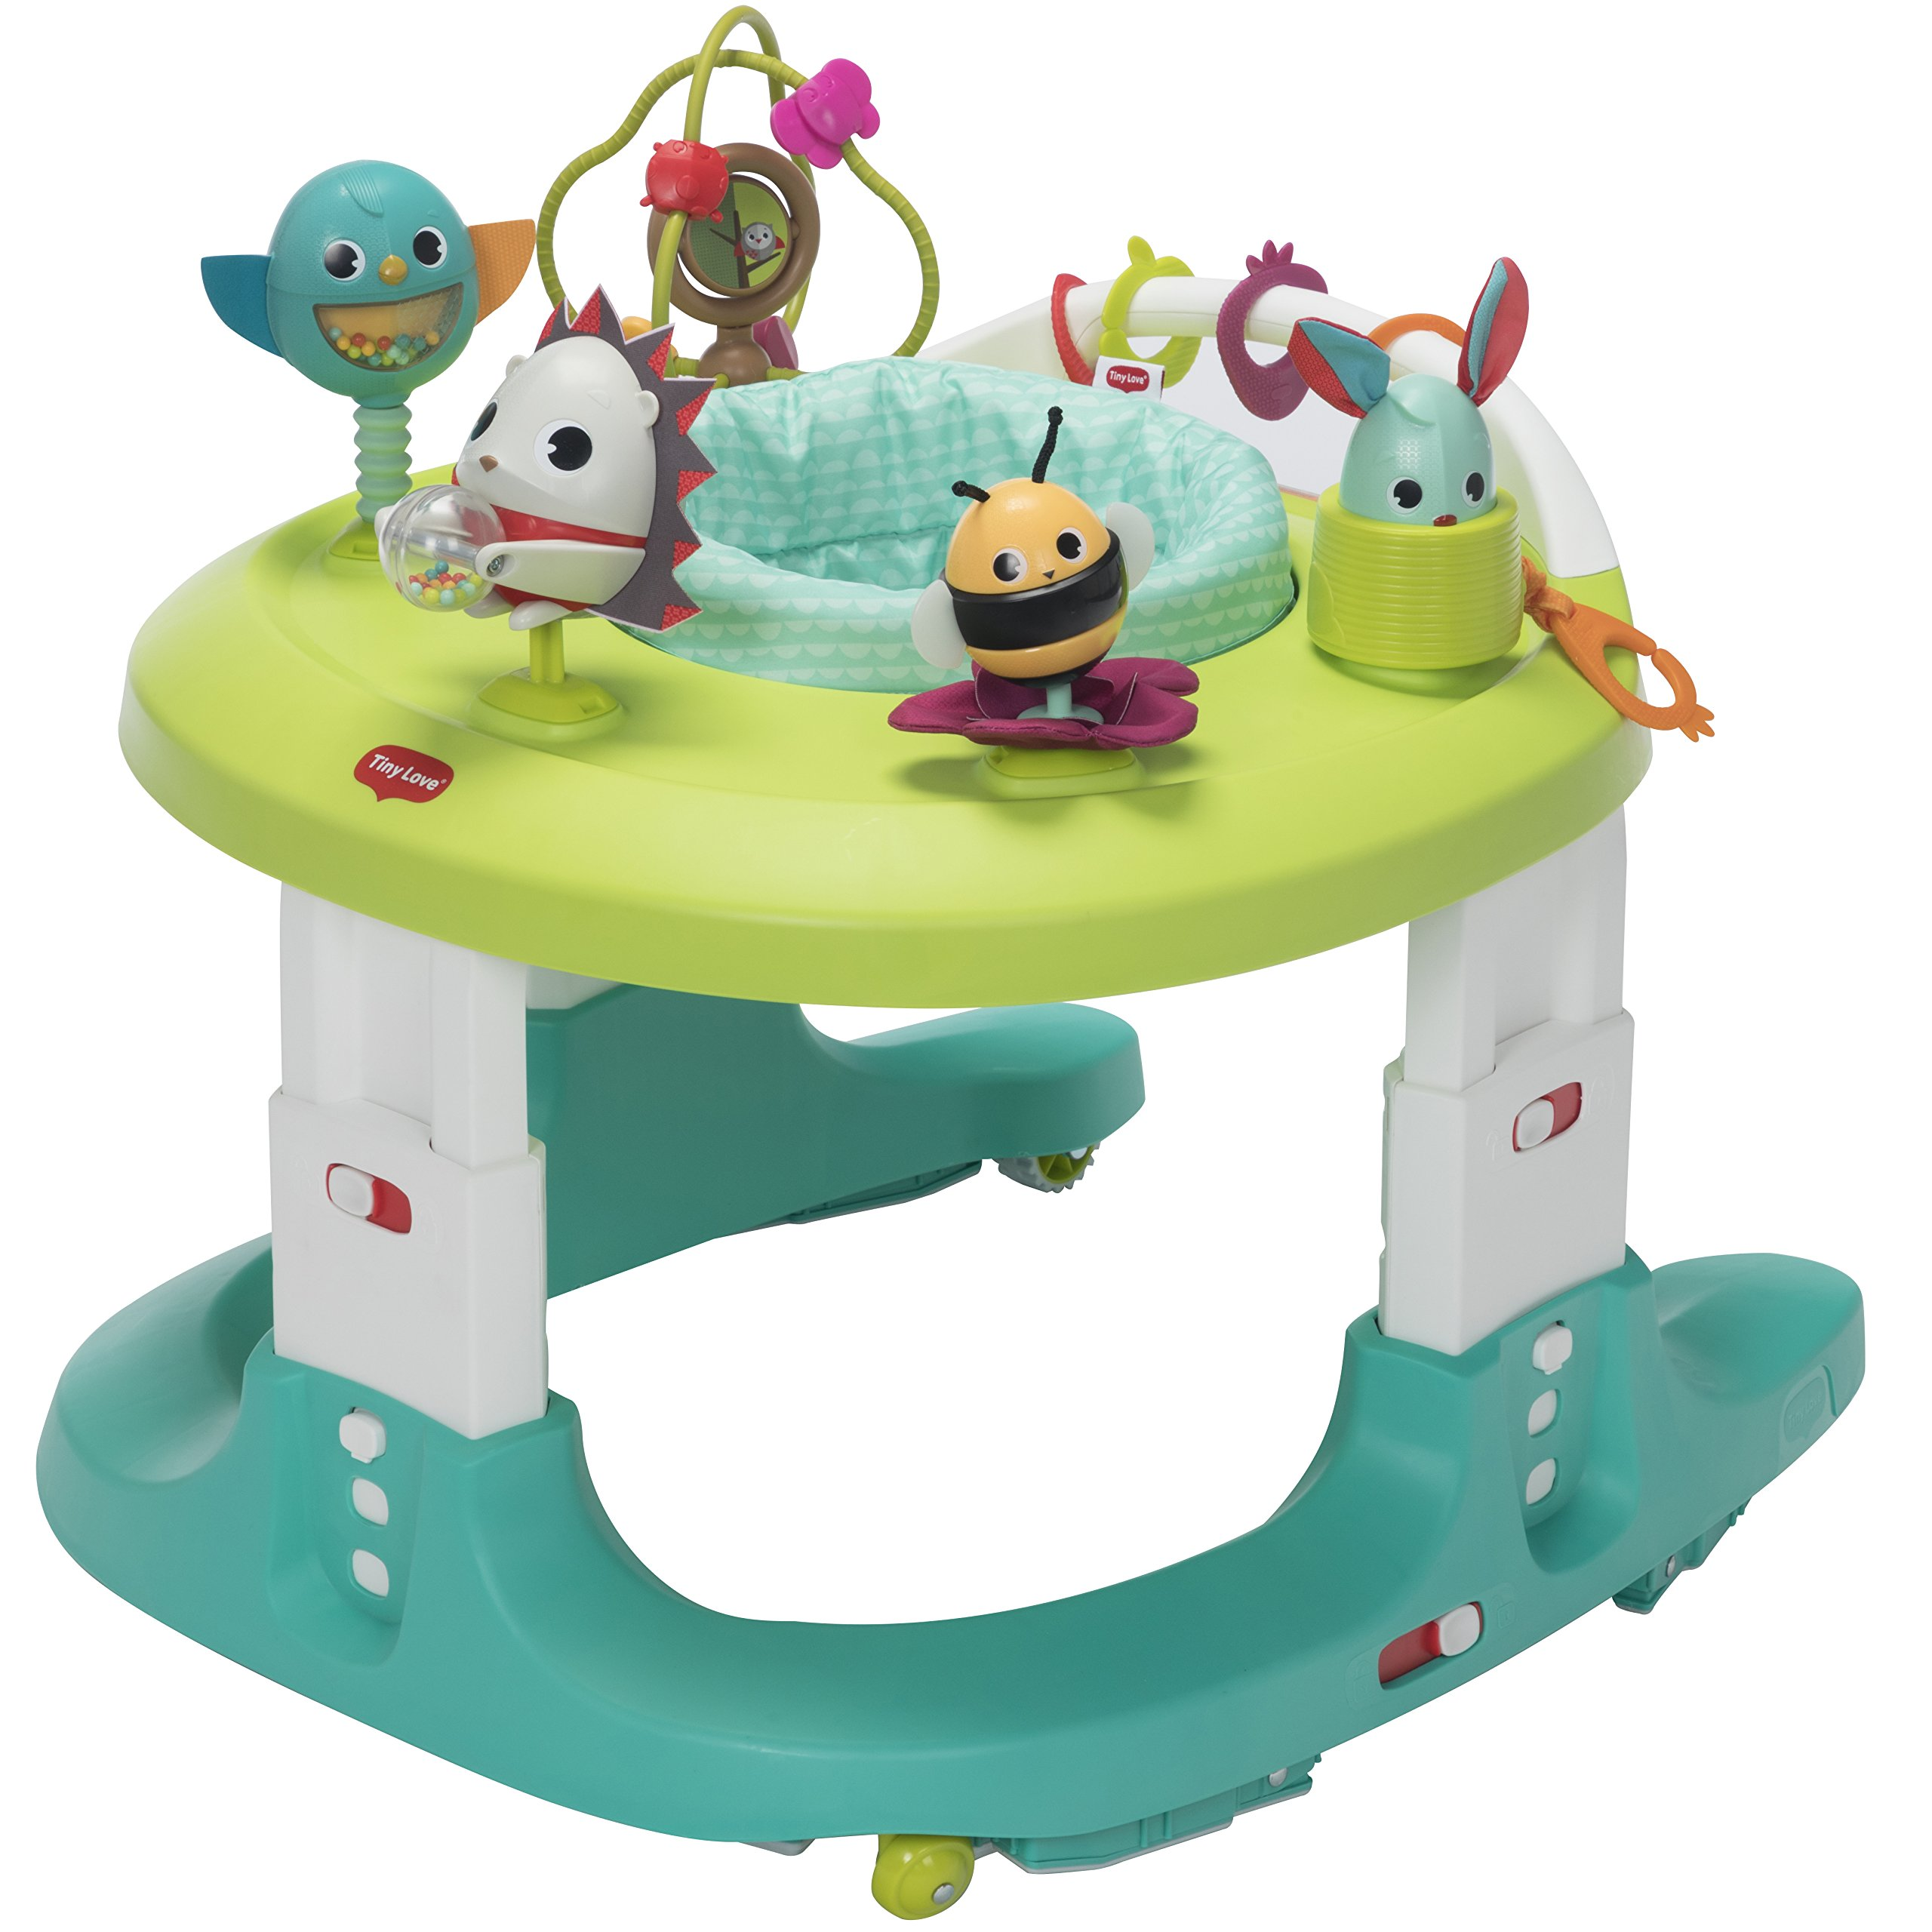 Tiny Love Meadow Days Here I Grow 4-in-1 Baby Walker and Mobile Activity Center by Tiny Love (Image #1)